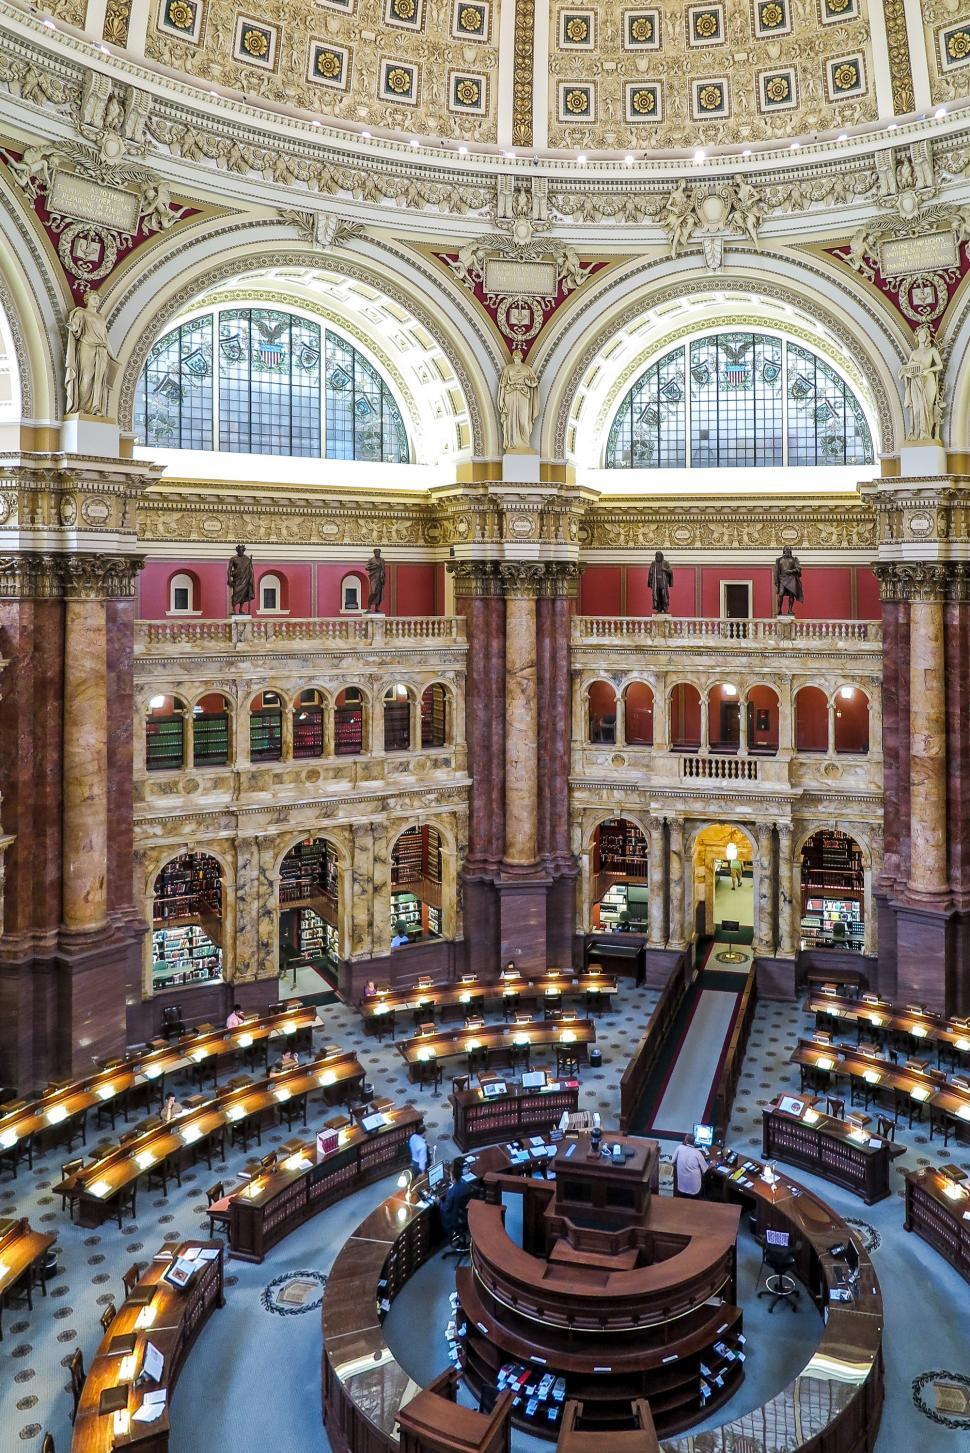 Download Free Stock Photo of Interior of Library of Congress